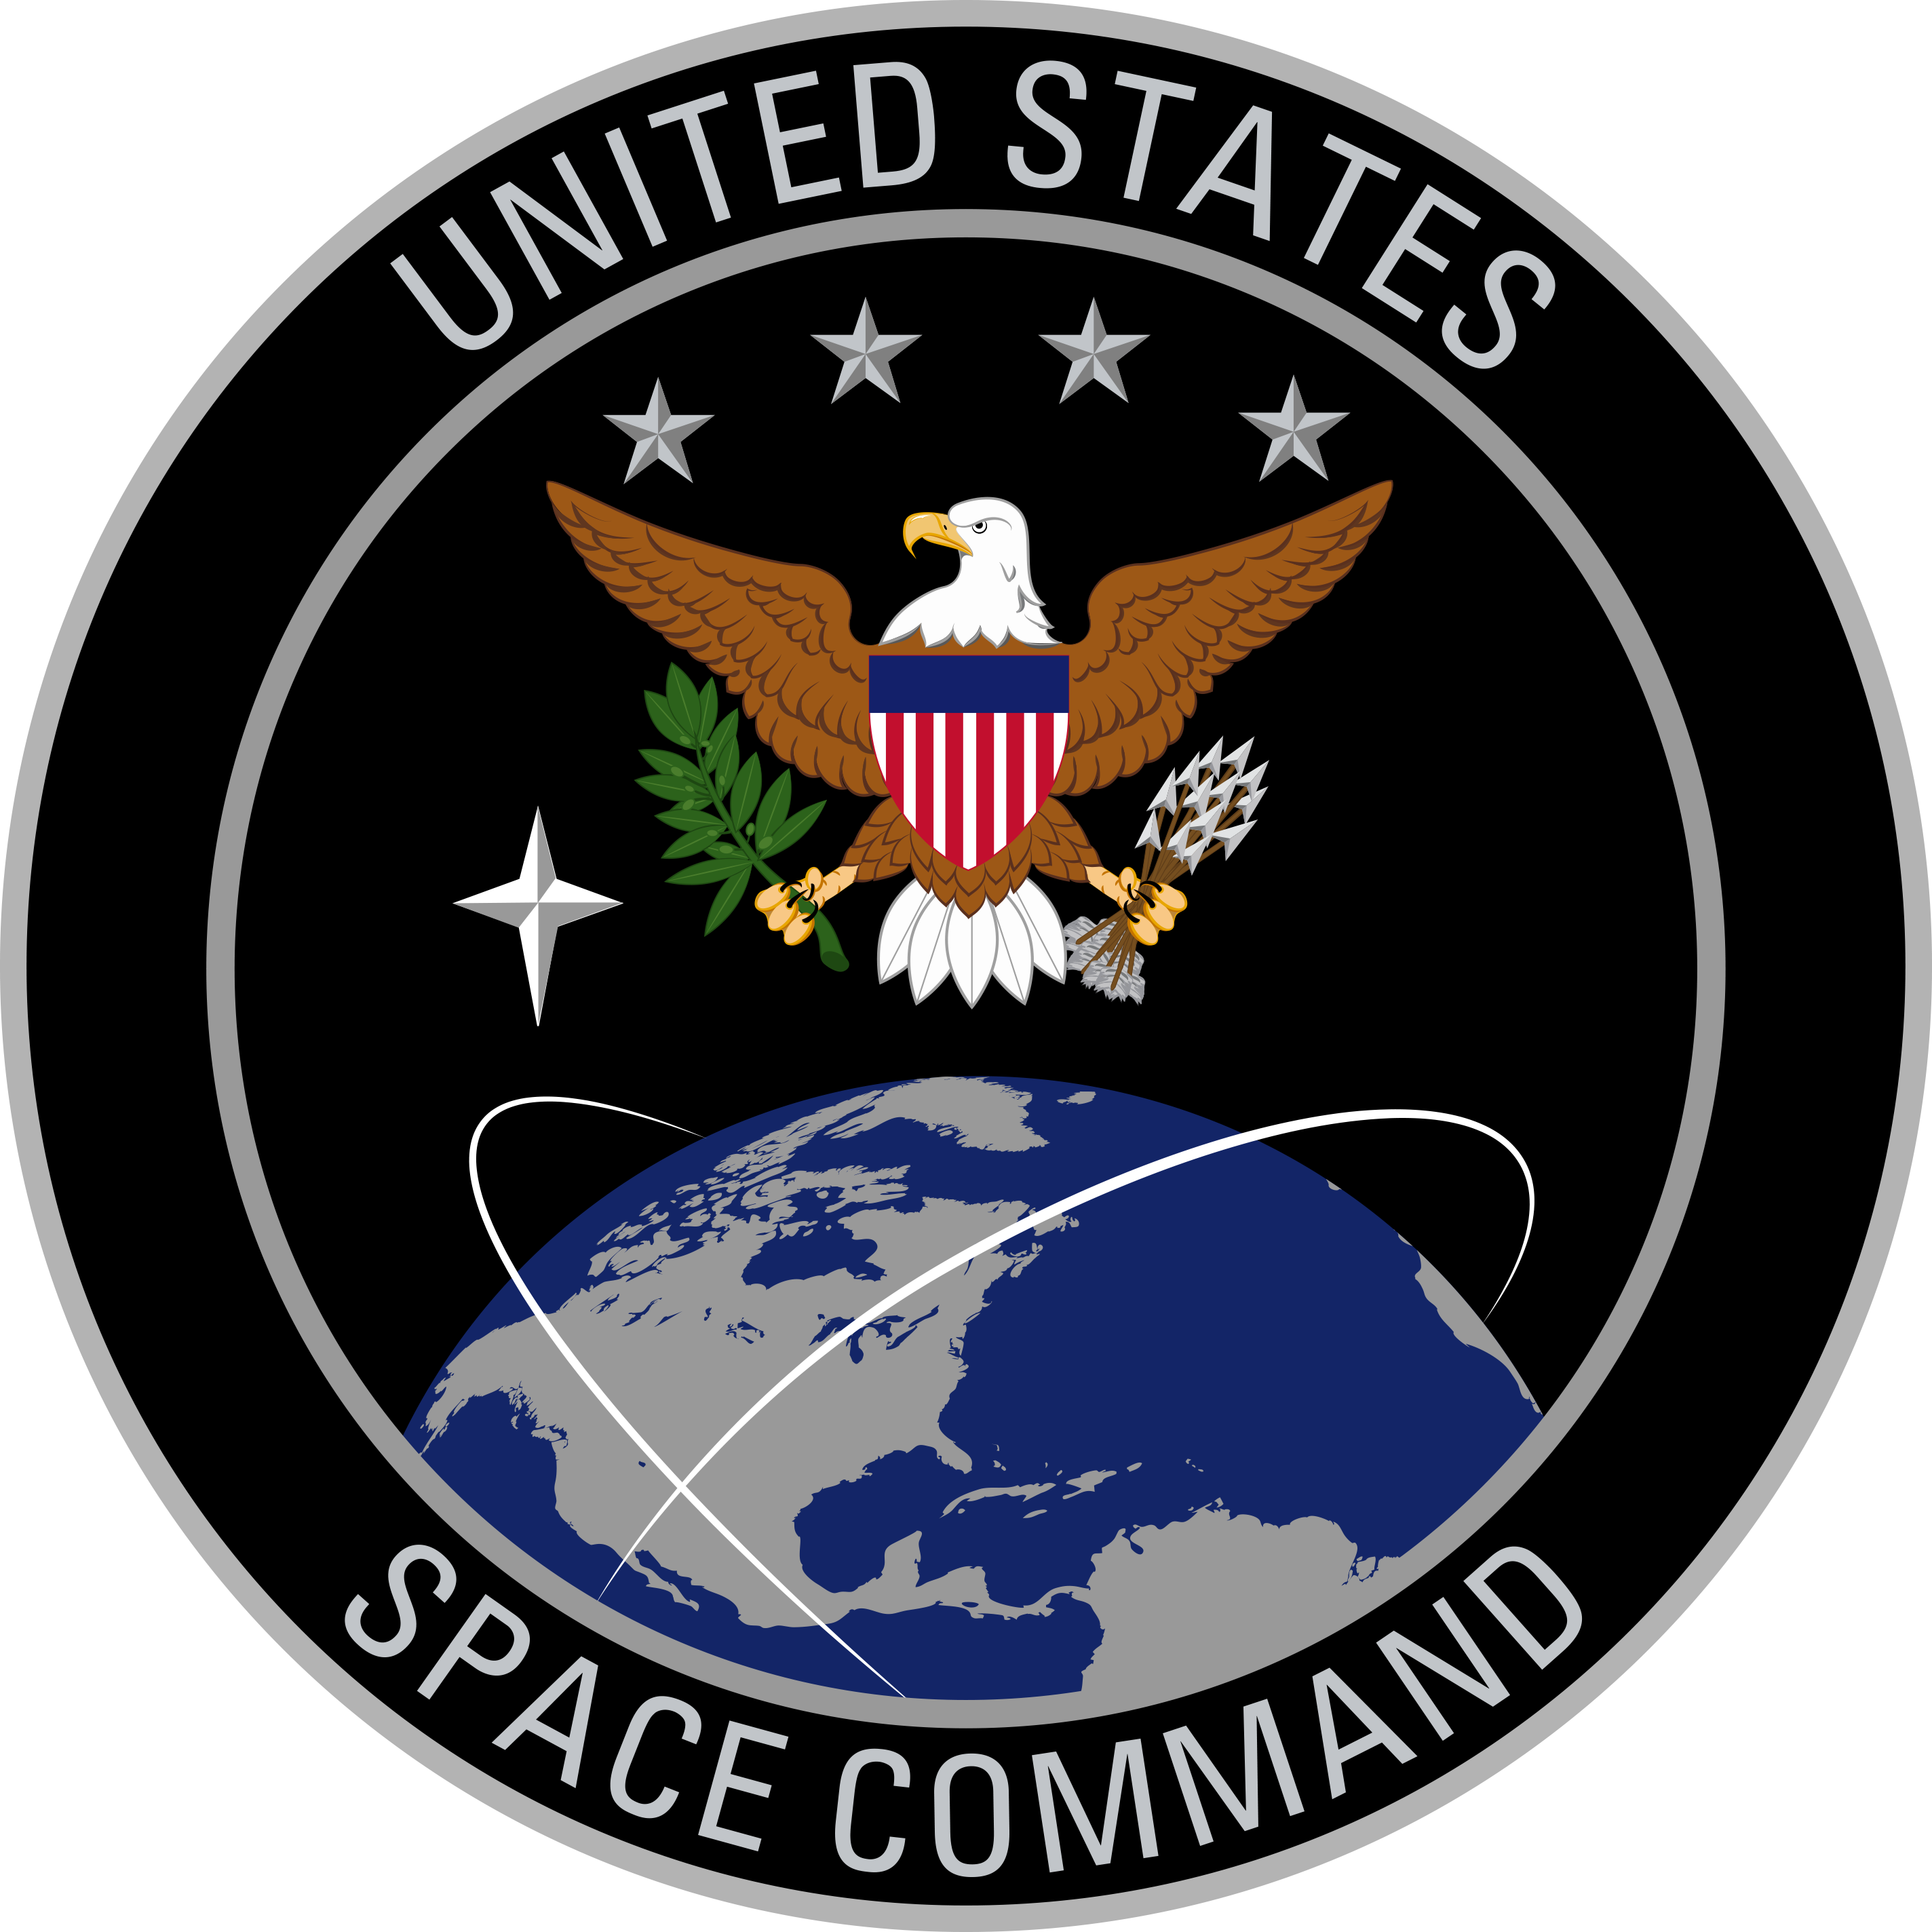 United_States_Space_Command_emblem_2019.